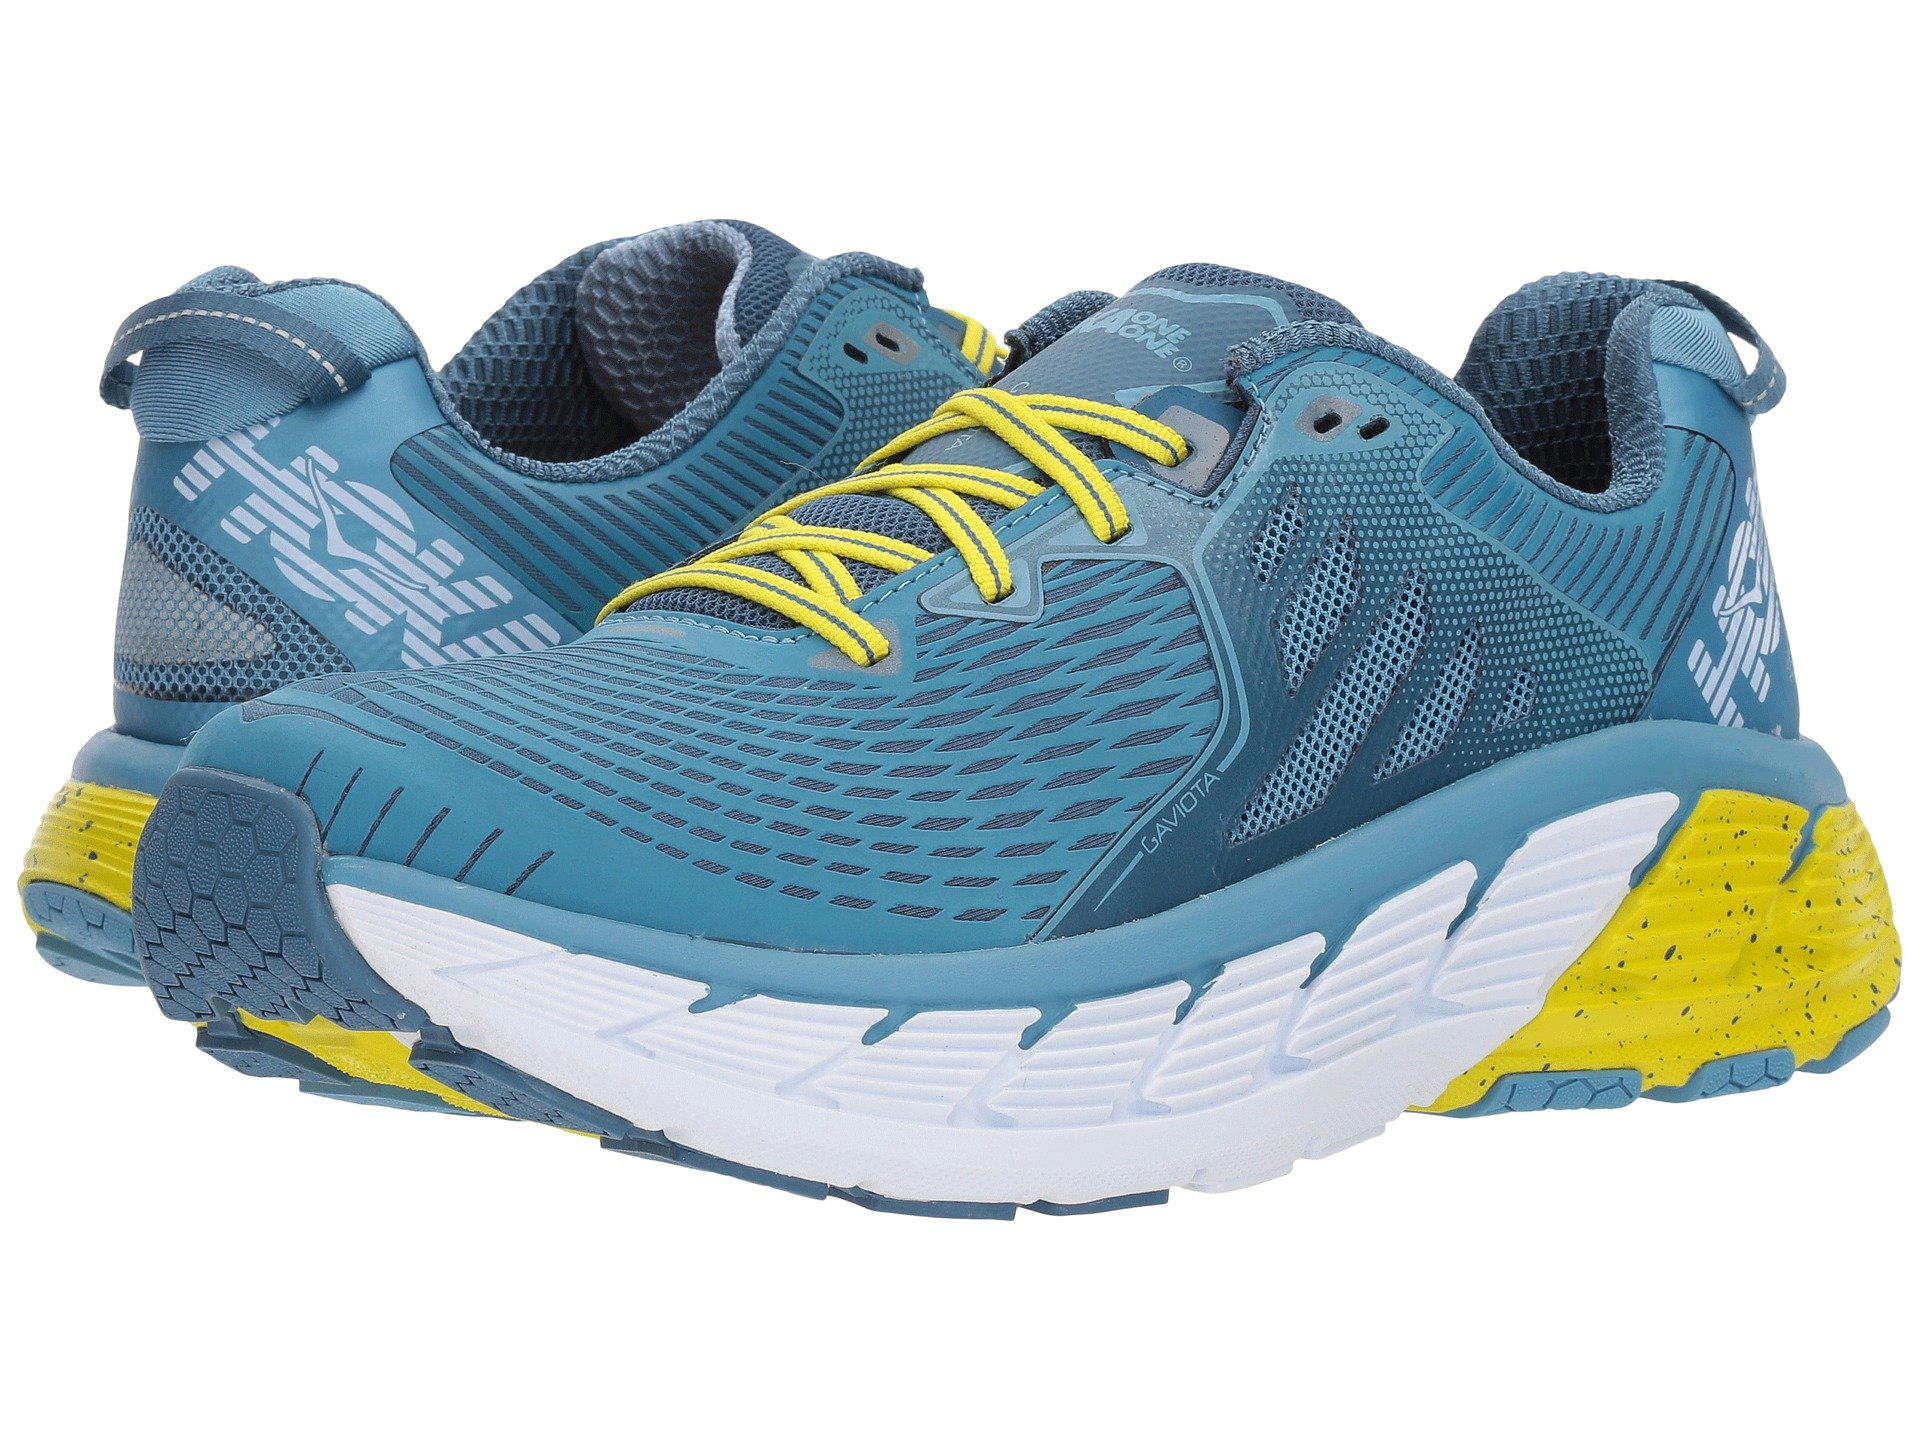 HOKA ONE ONE GAVIOTA M - Niagara / Midnight